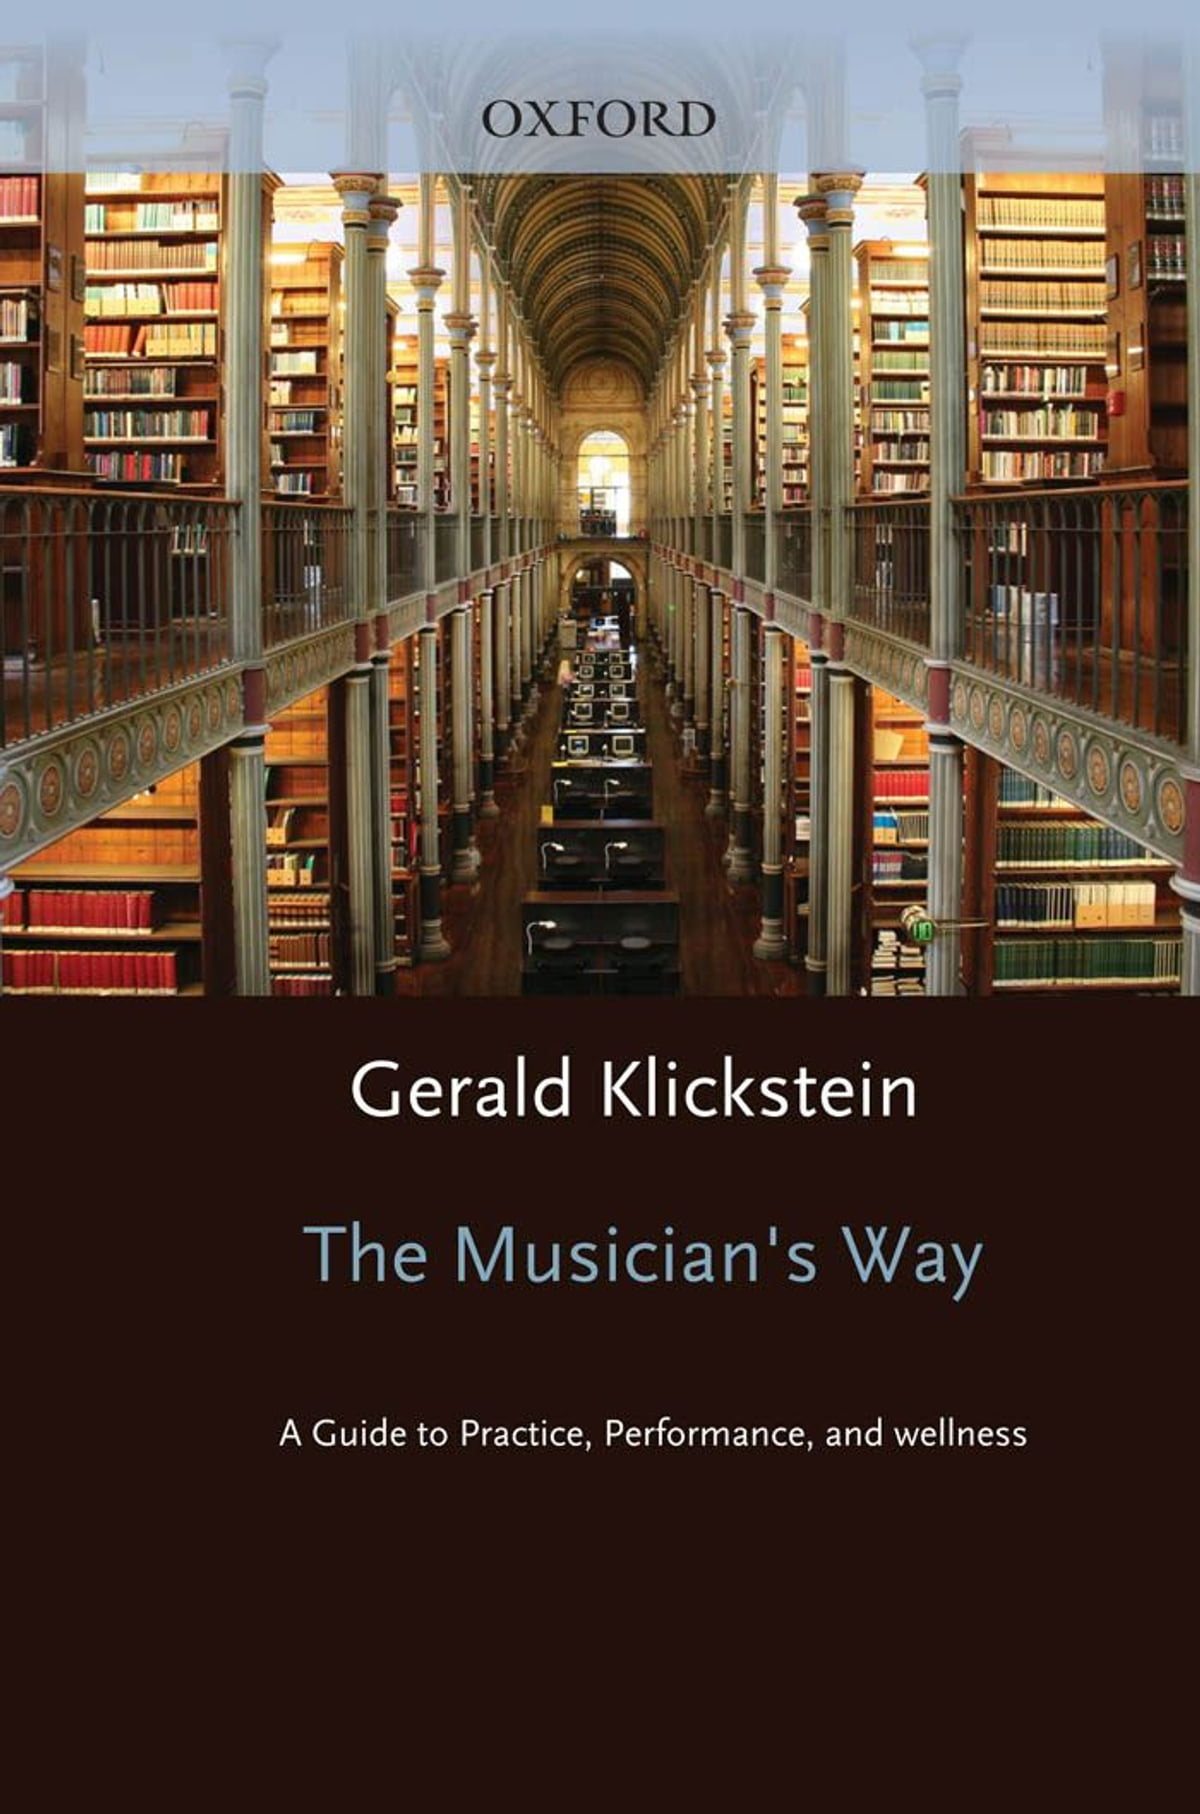 The Musician's Way : A Guide To Practice Performance And Wellness Ebook By Gerald  Klickstein  9780199841004  Rakuten Kobo